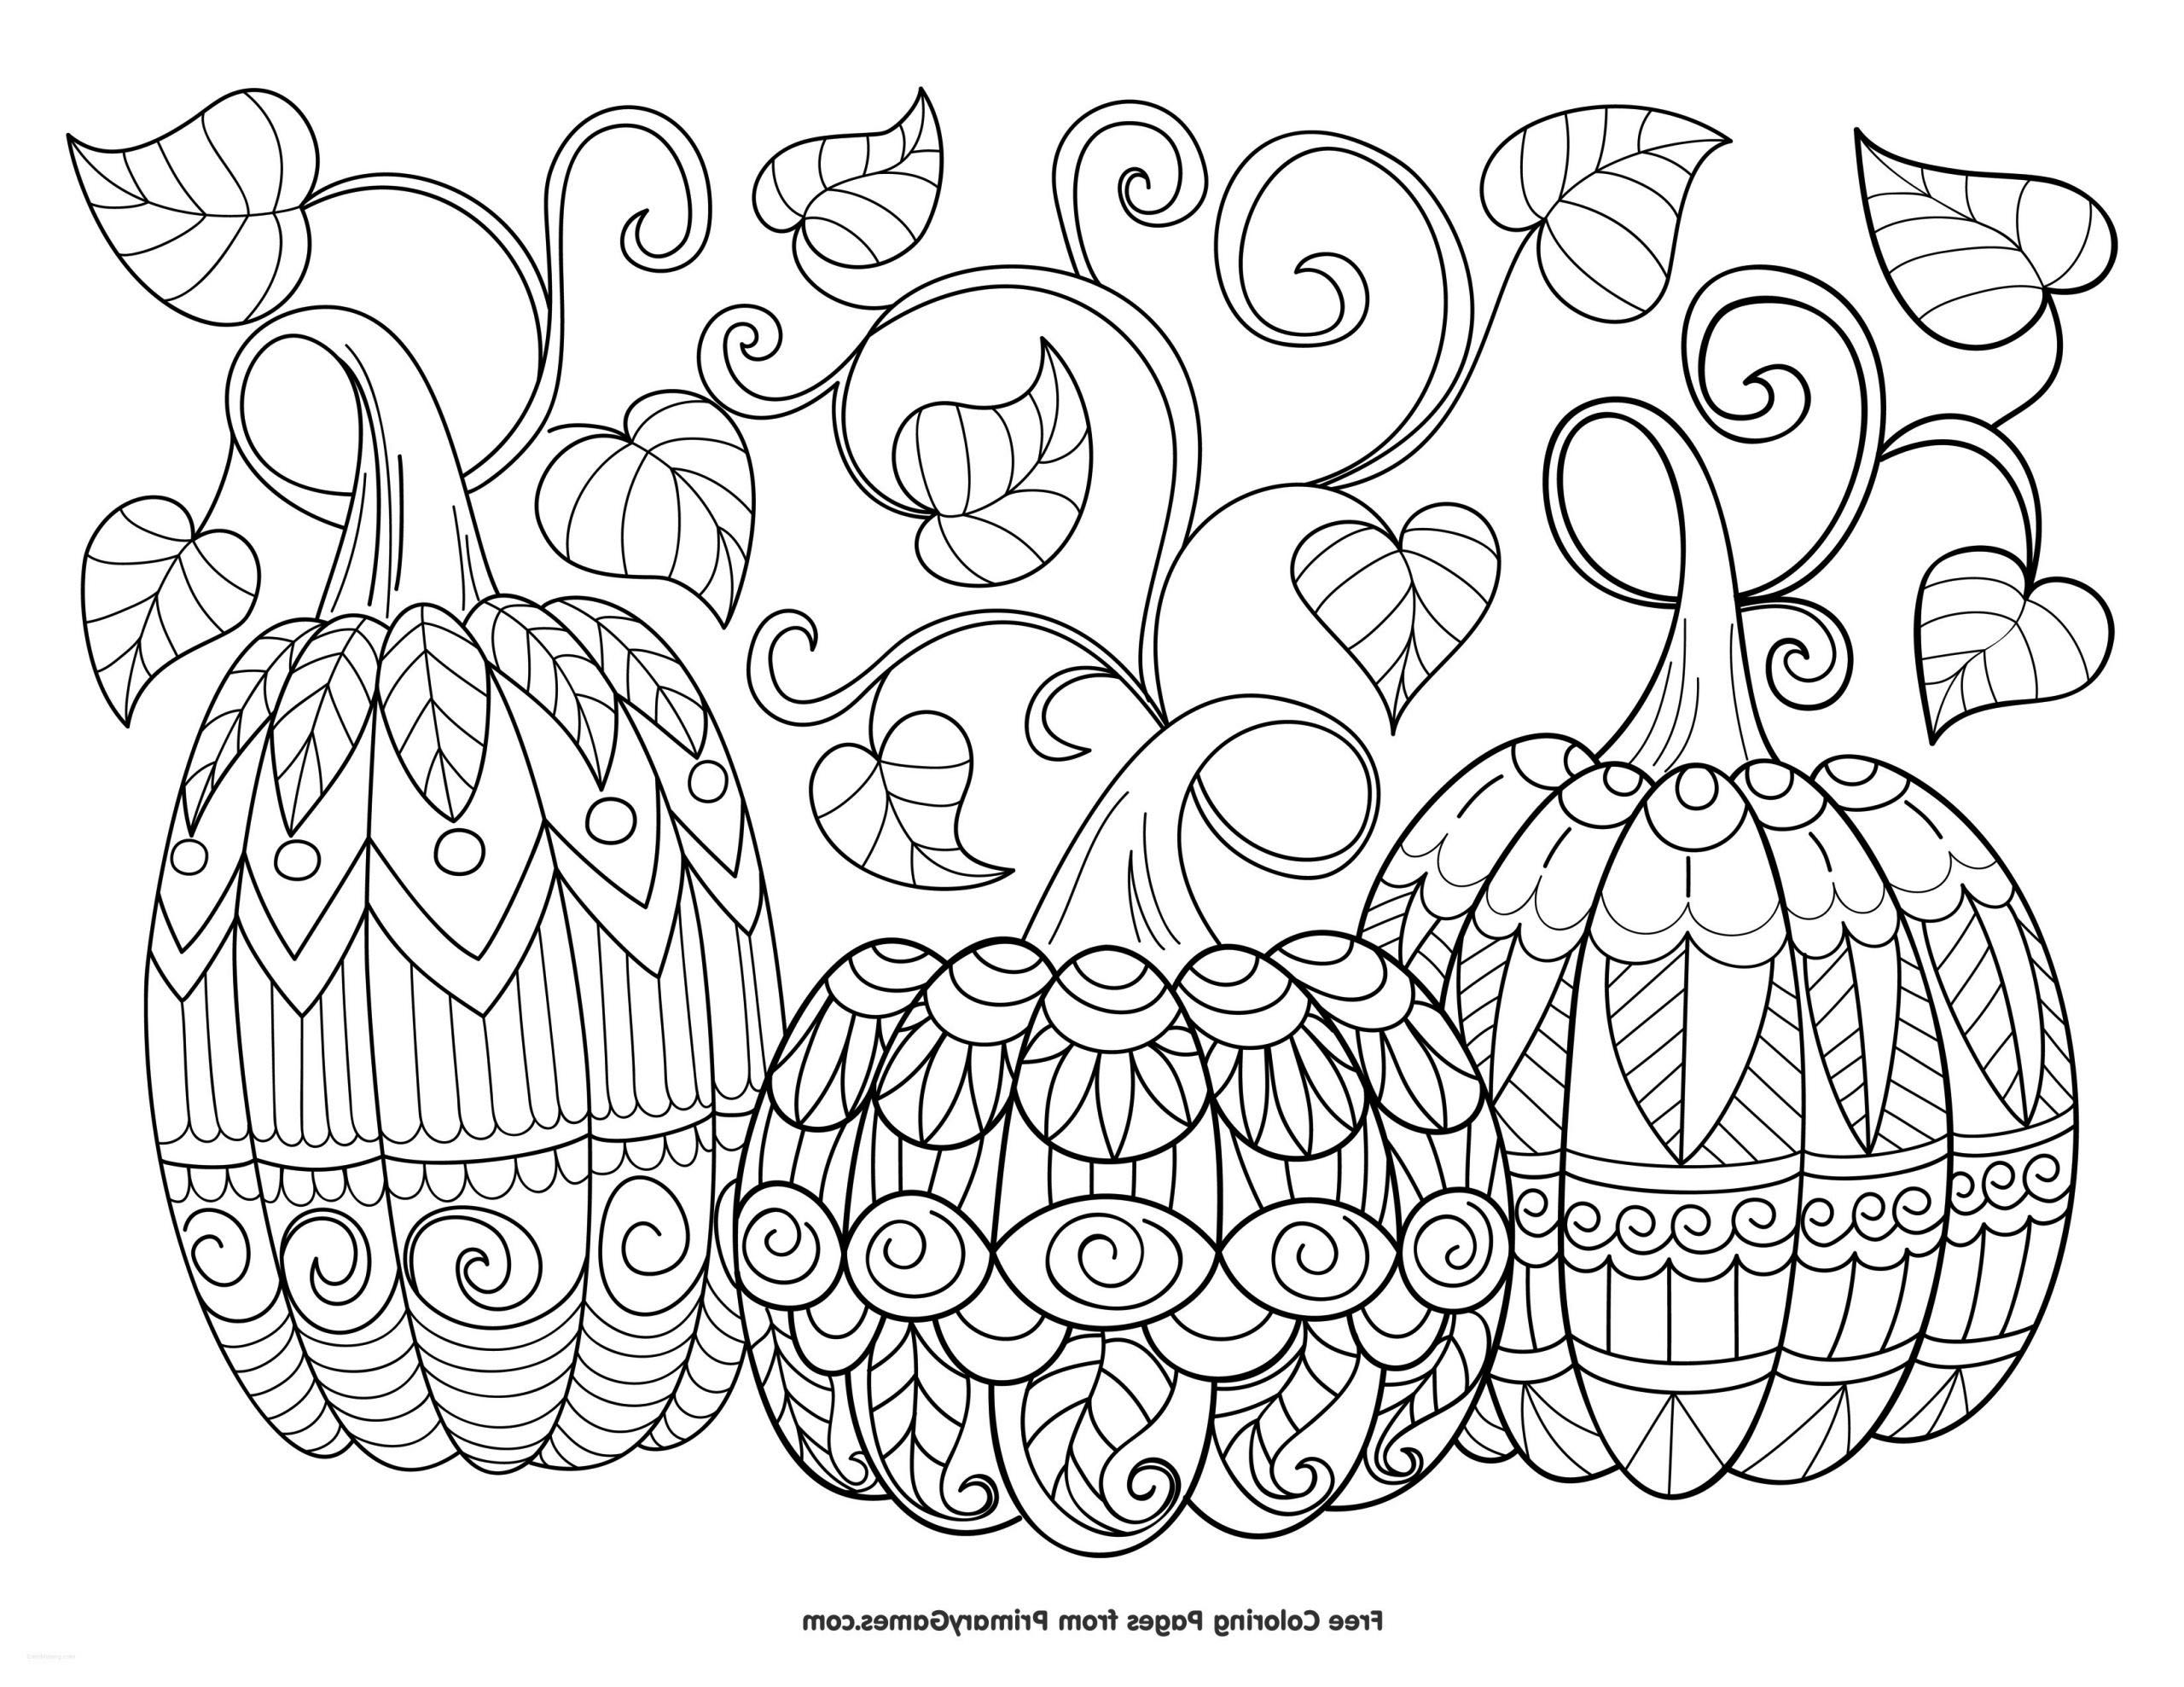 Fall Pumpkin Coloring Pages for Adults Printable Mandala Coloring